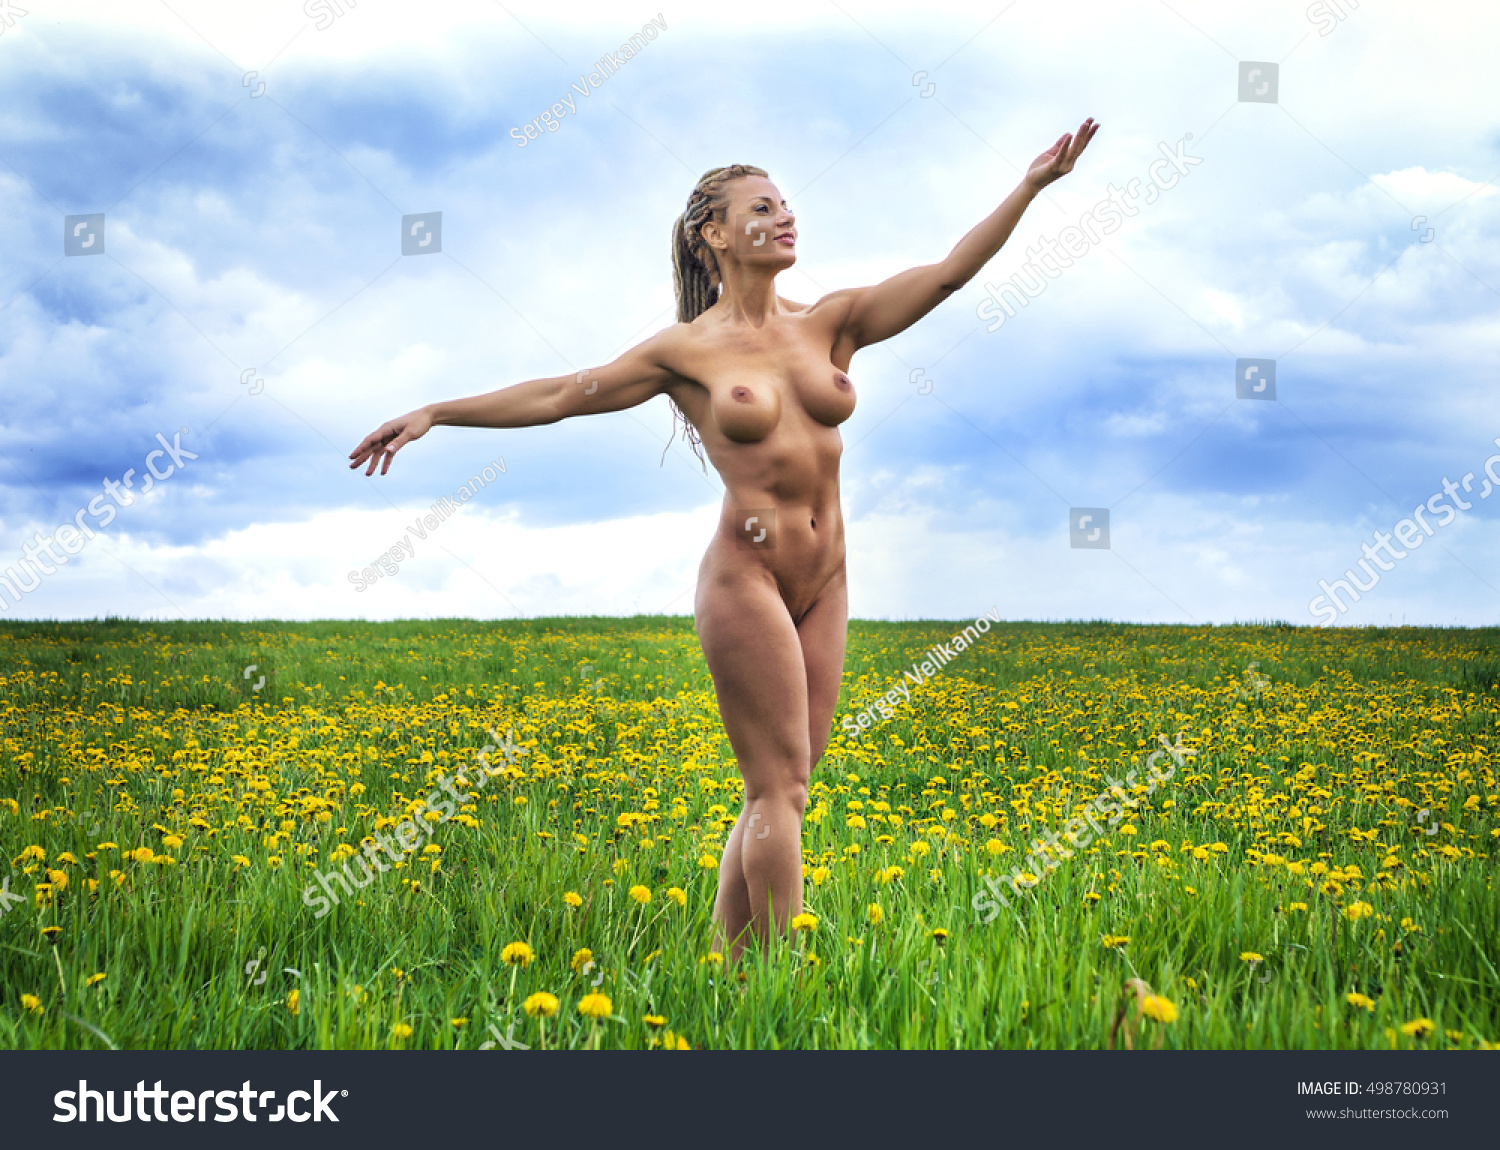 athletic woman nude